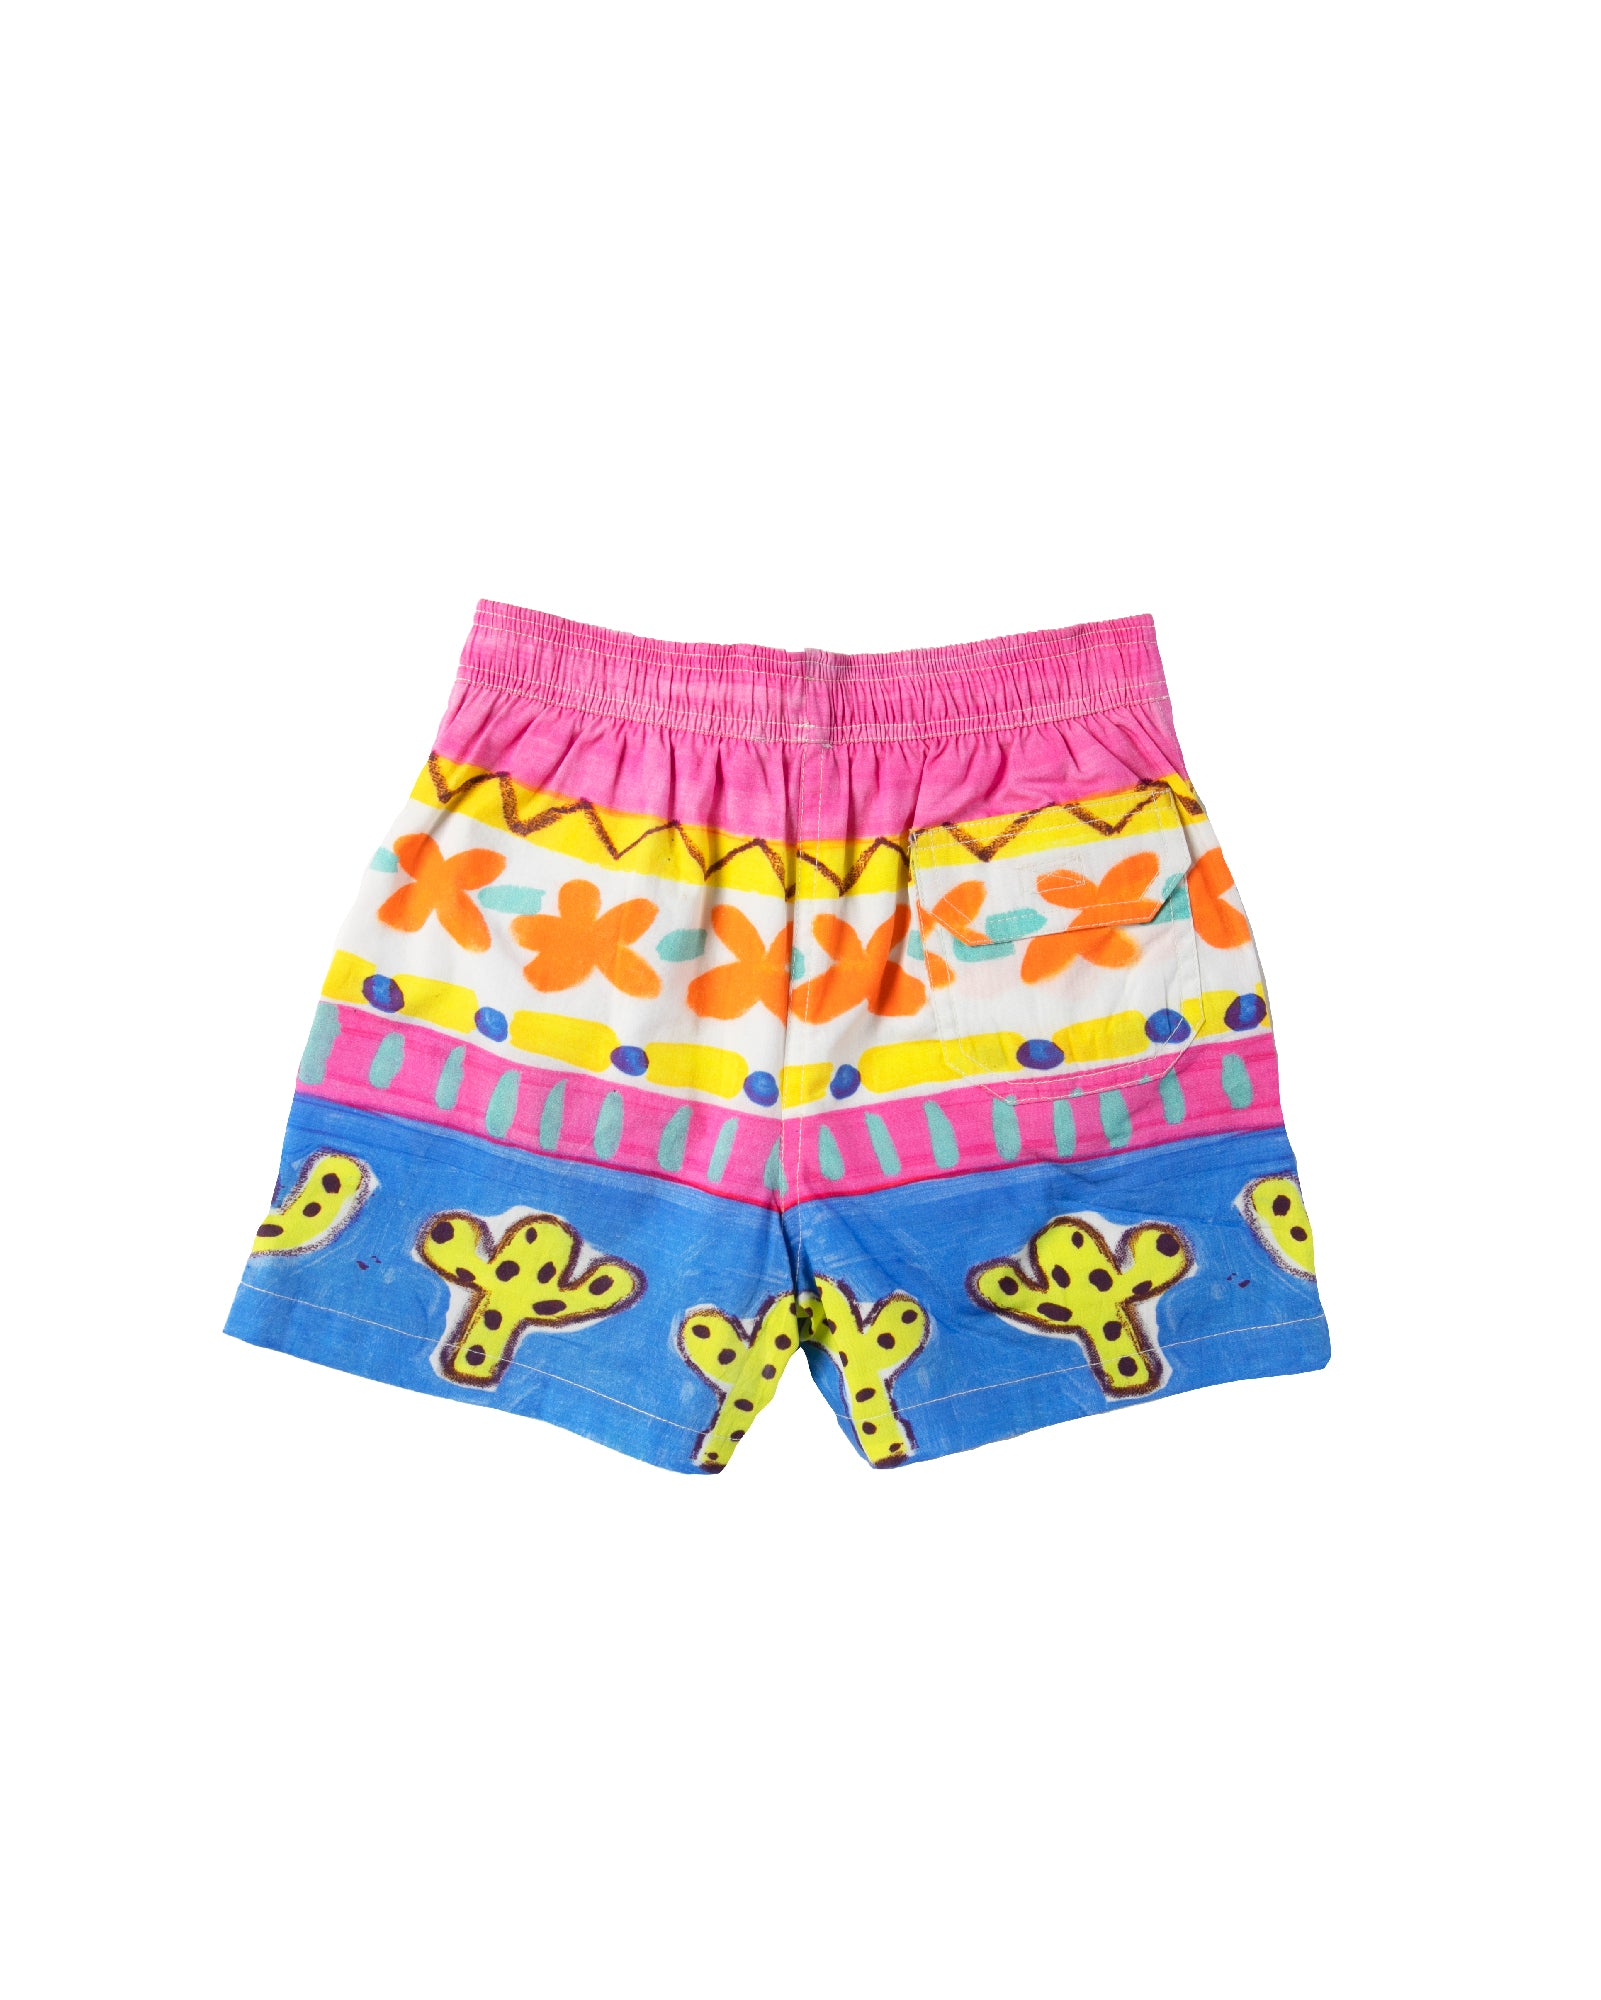 The Desert Cactus Boys Boardshorts by Bonita Bambino - BACK